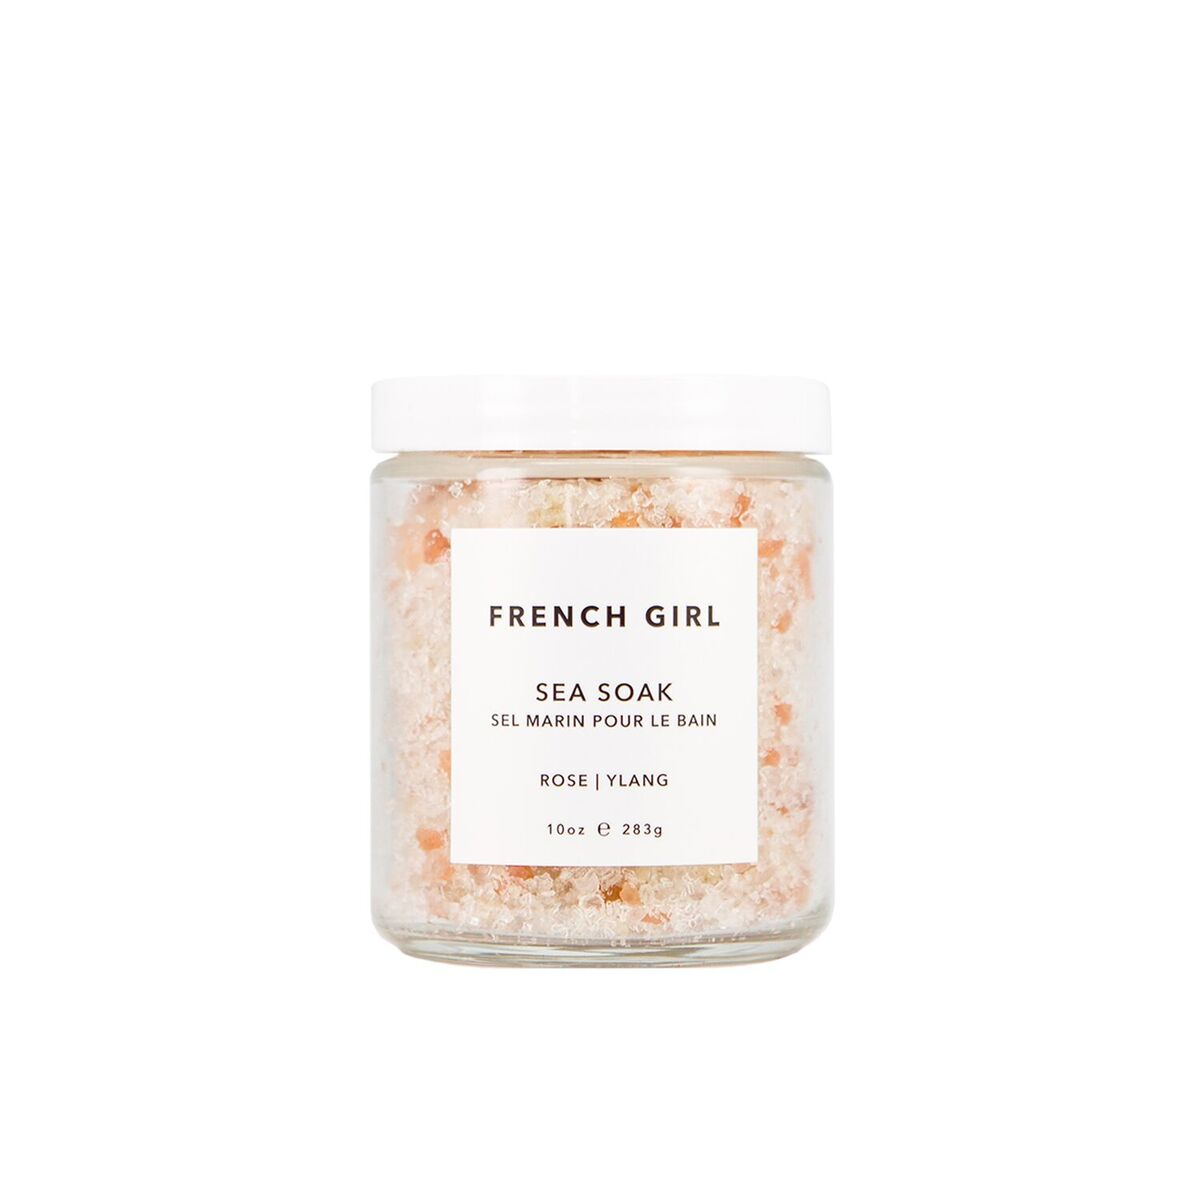 MECCA: French Girl Sea Soak in Rose/Ylang